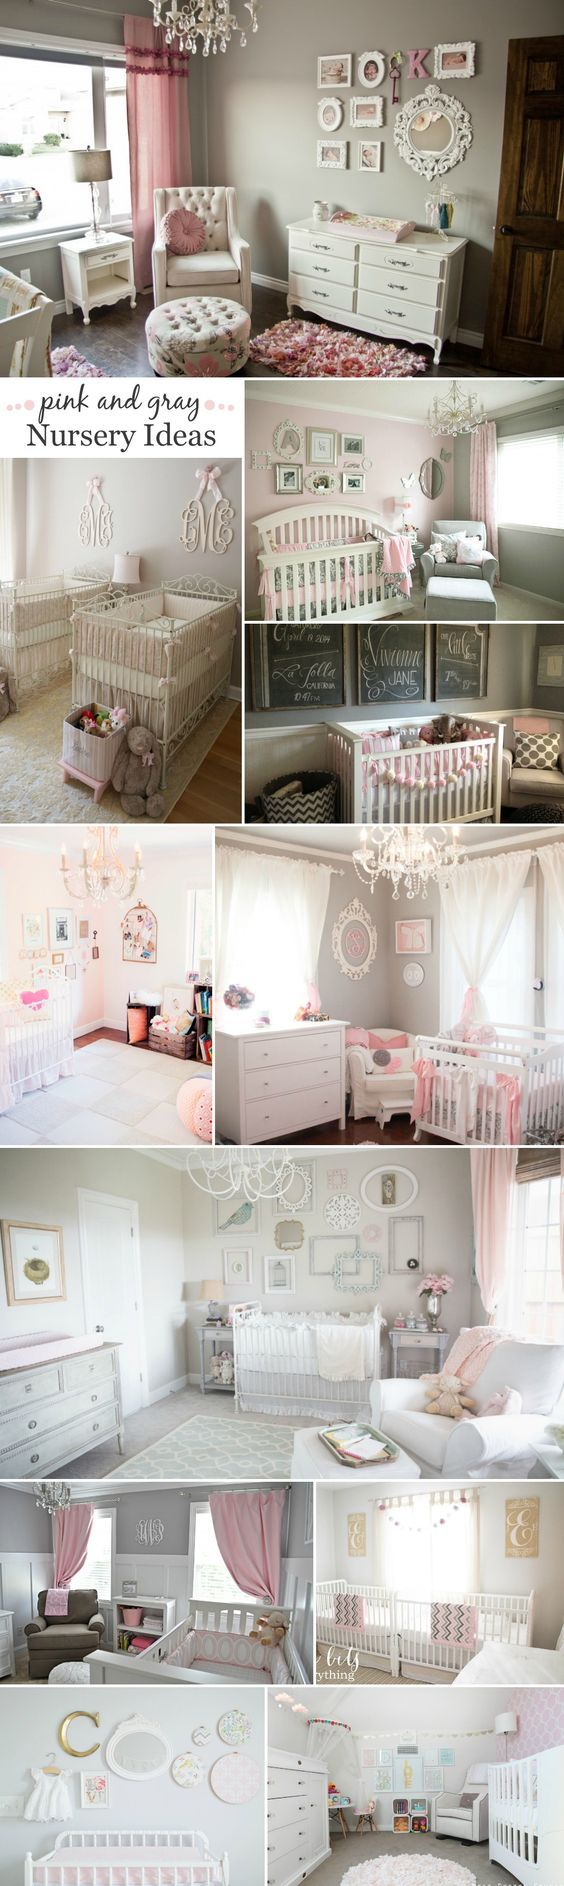 Pink and Gray Nursery Ideas - 11 looks we love!